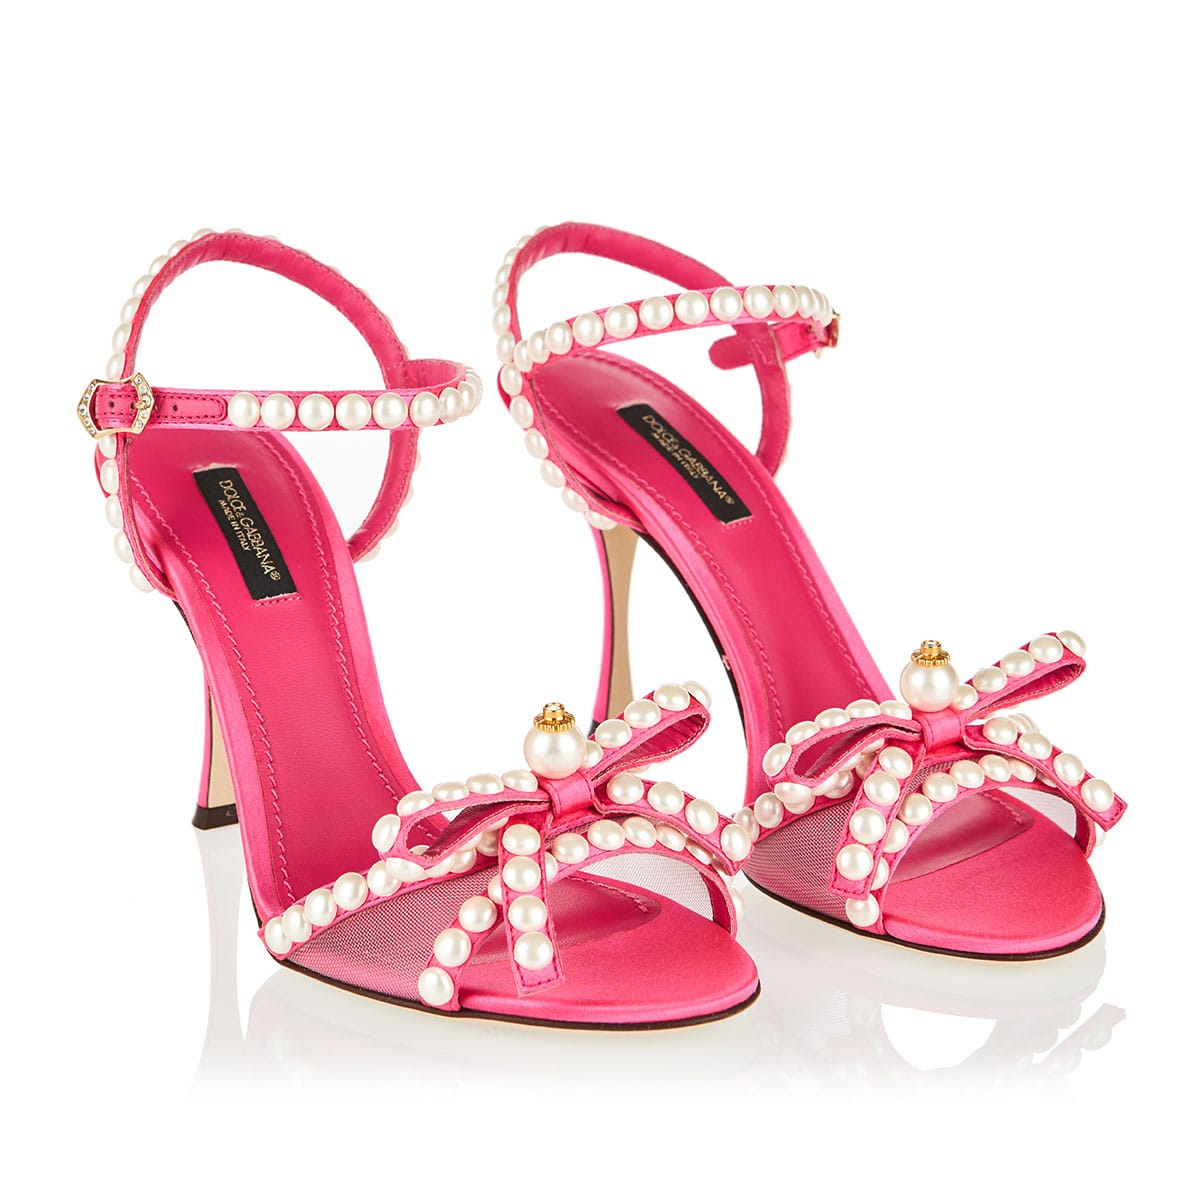 Pearl-embellished satin sandals